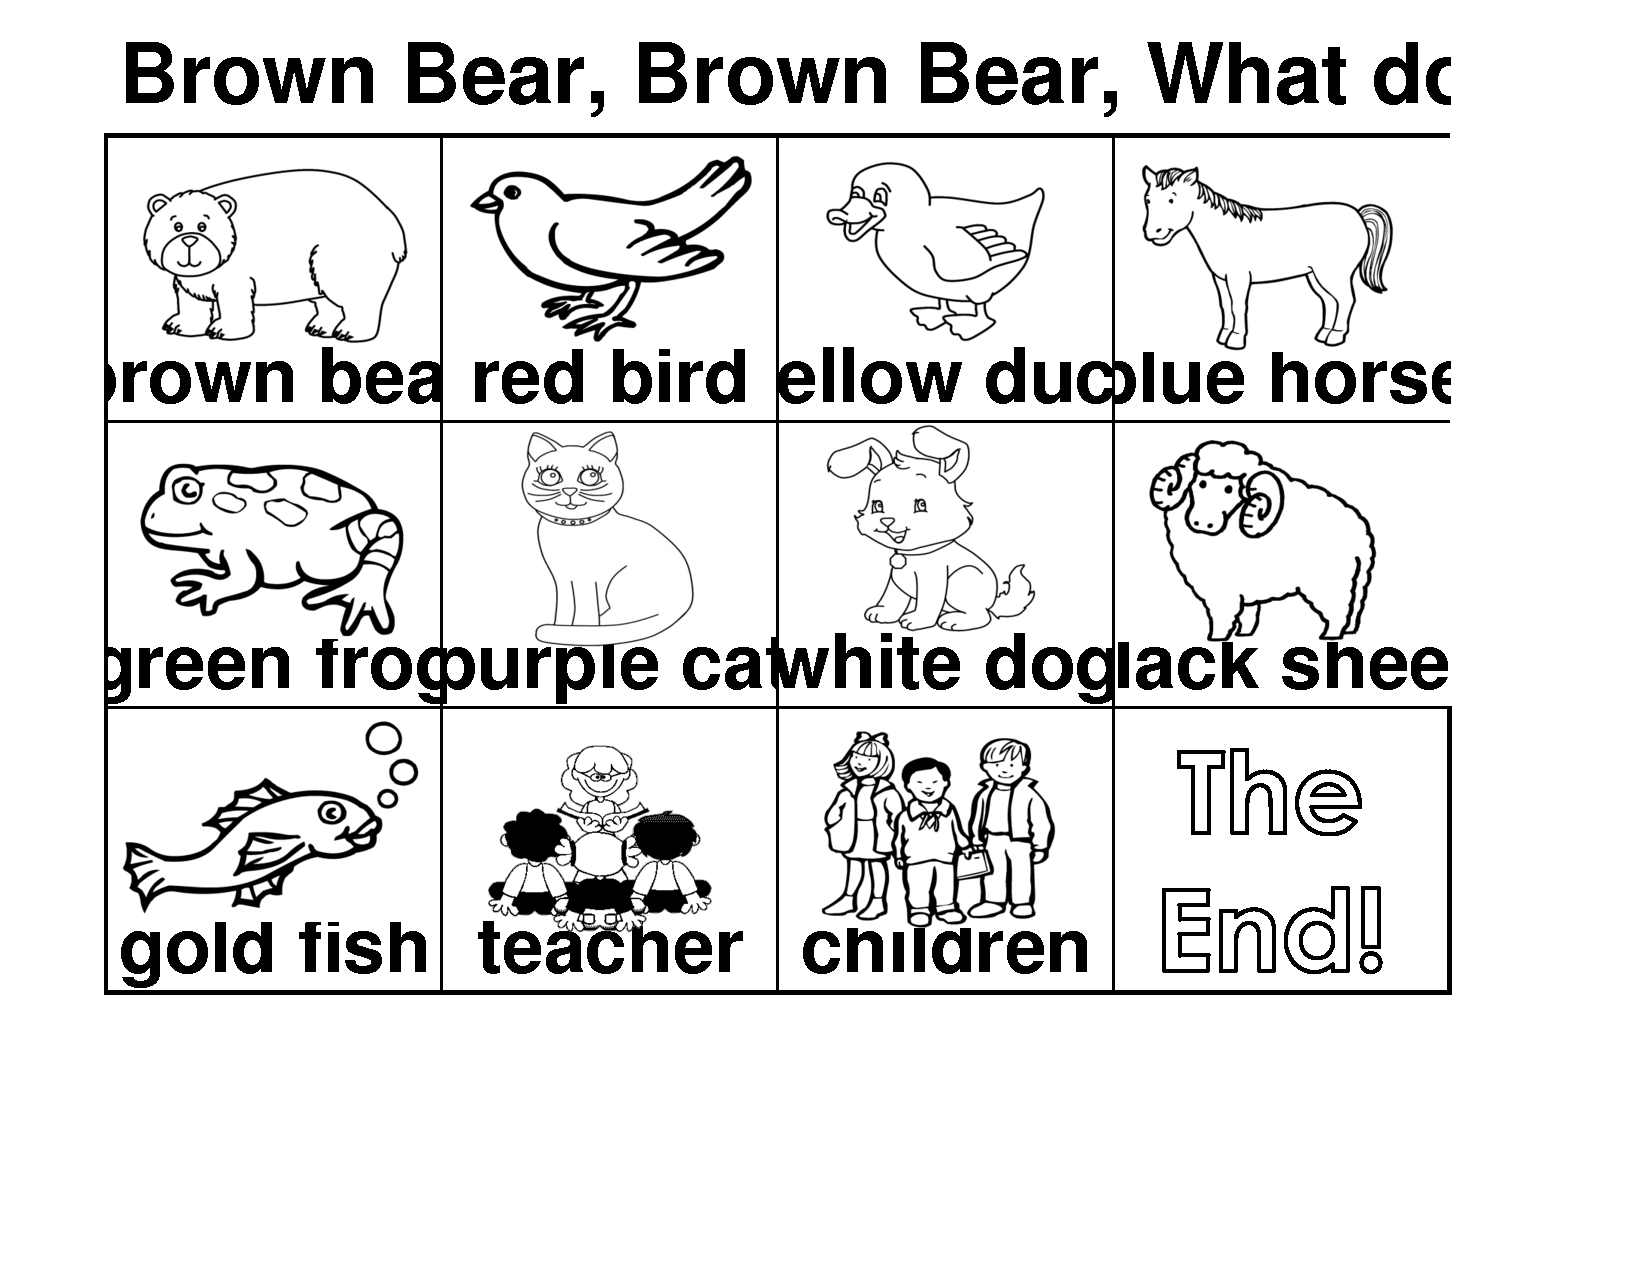 Pin By Stephany Gooden On Eric Carle Bear Coloring Pages Brown Bear Book Mini Books [ 1275 x 1650 Pixel ]